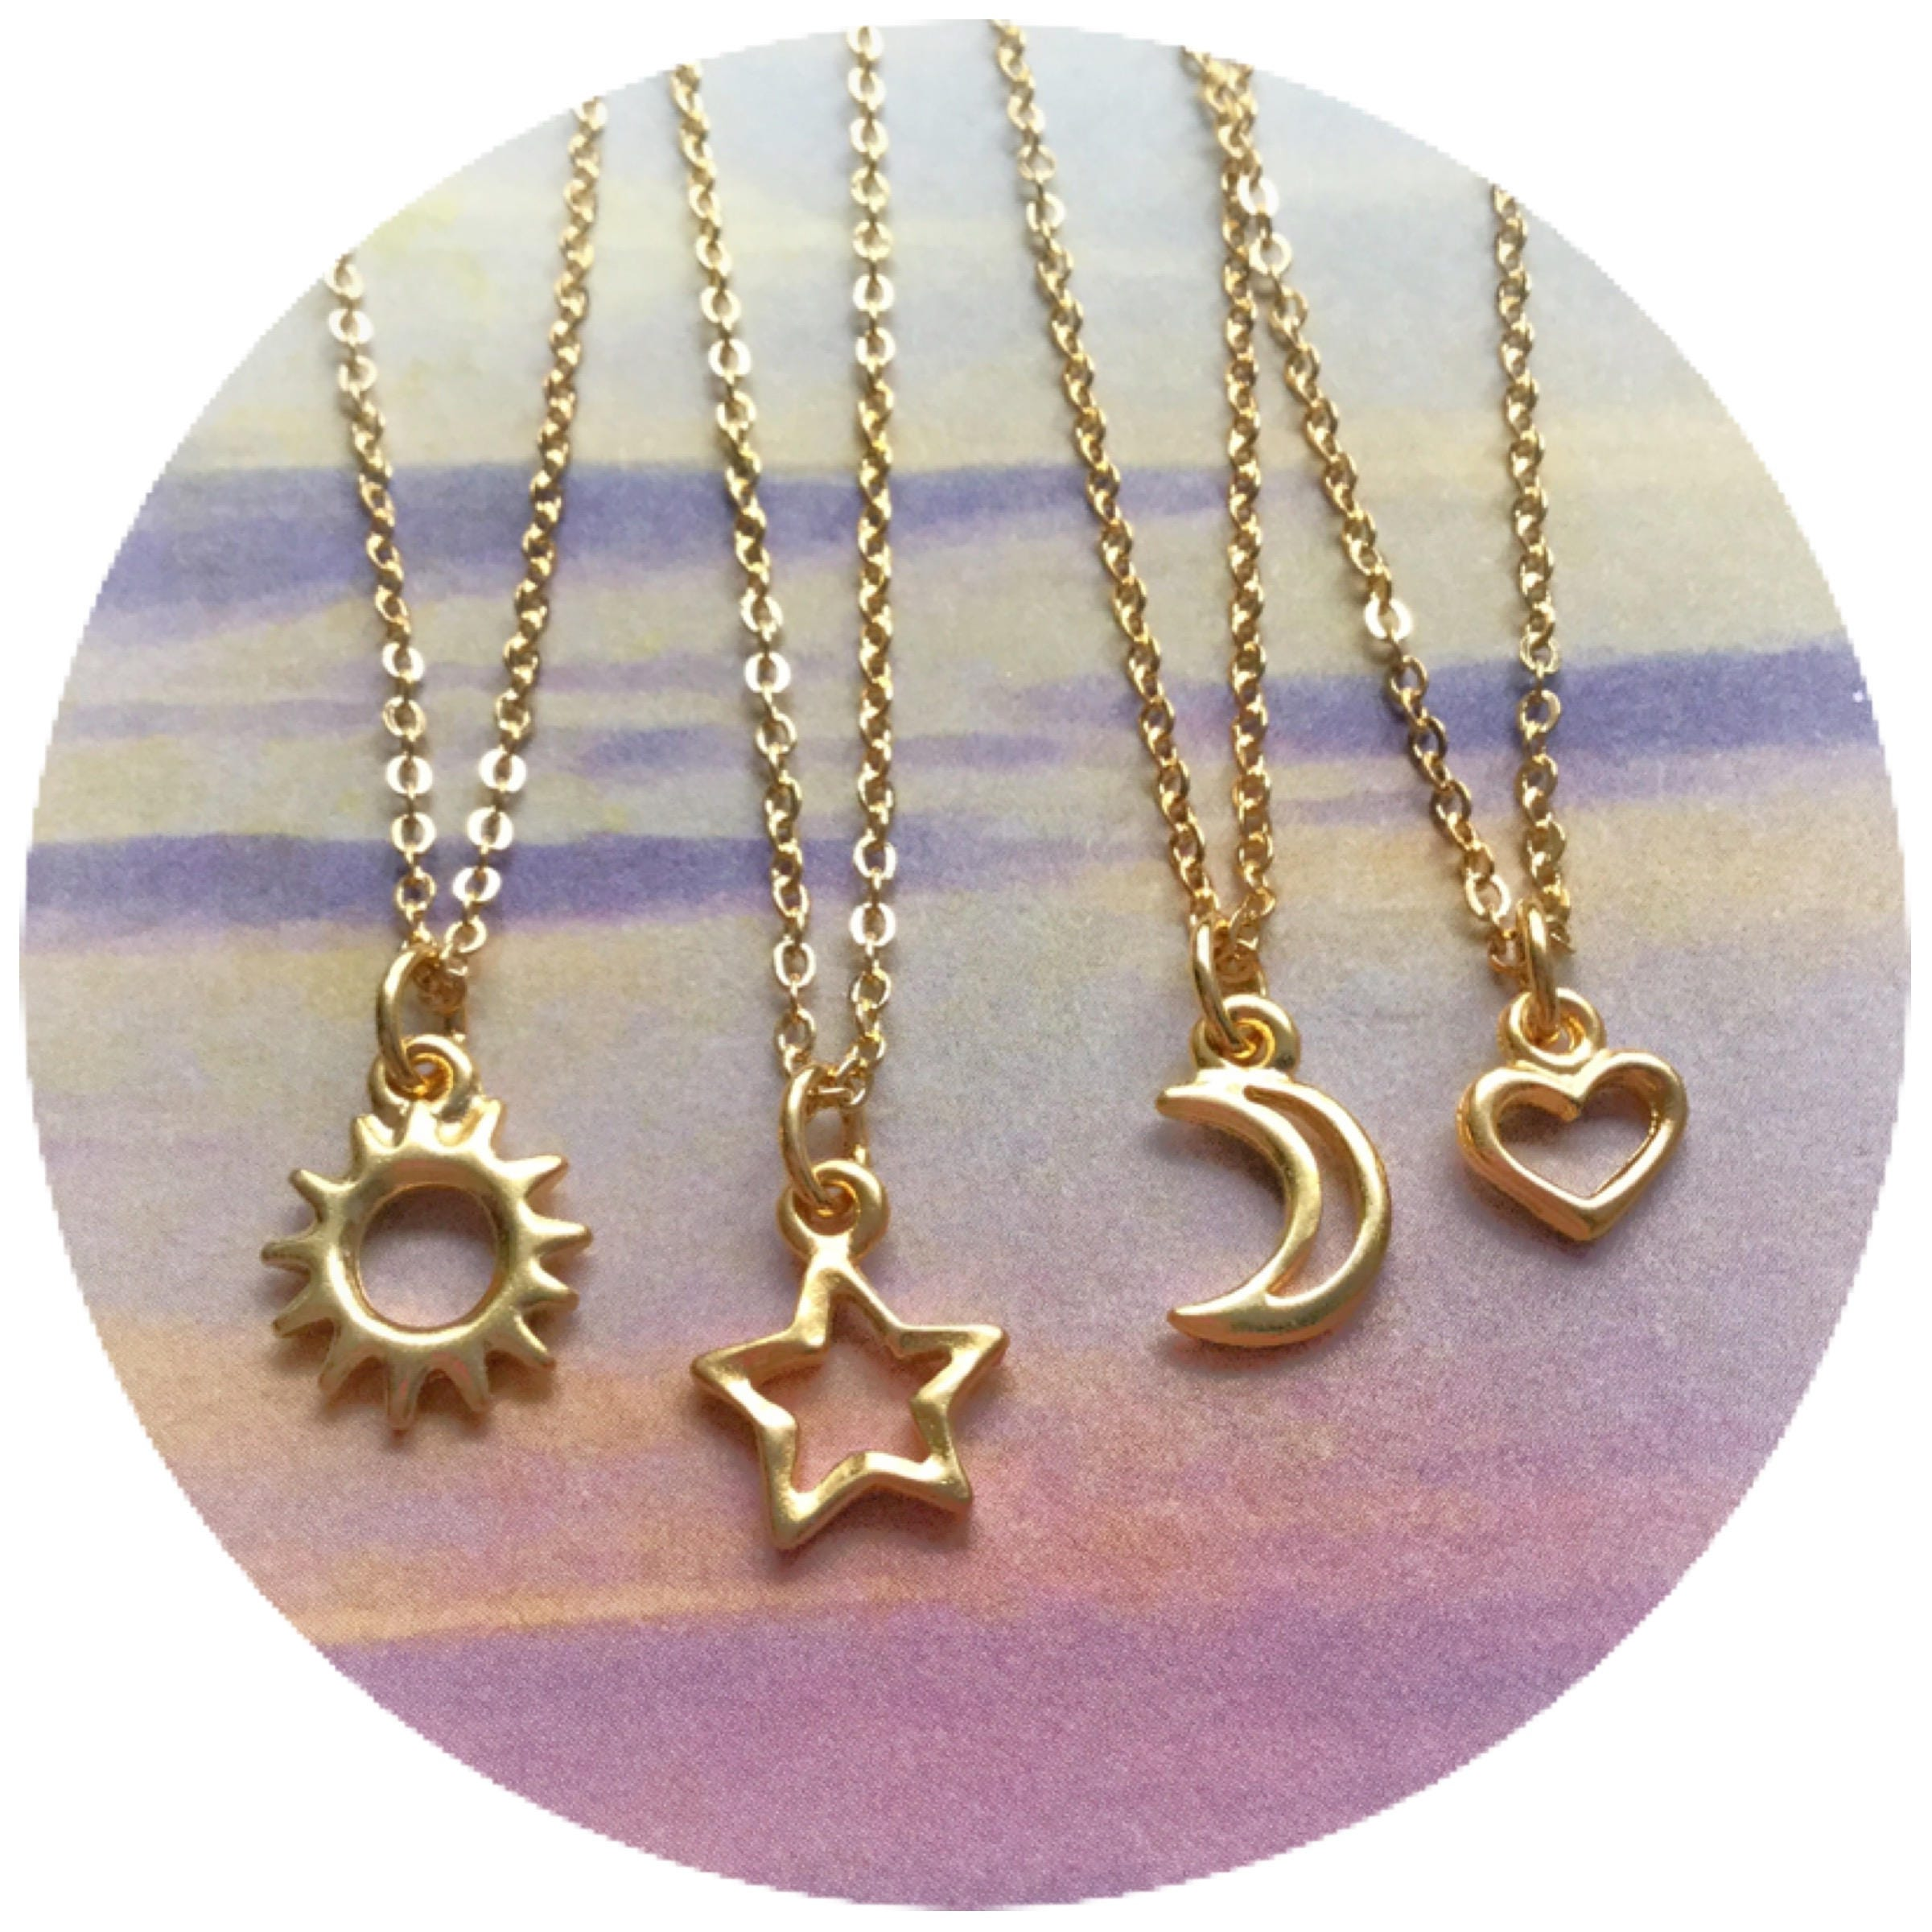 necklace star silver or il dainty kxsj listing sun jewelry minimalist moon fullxfull